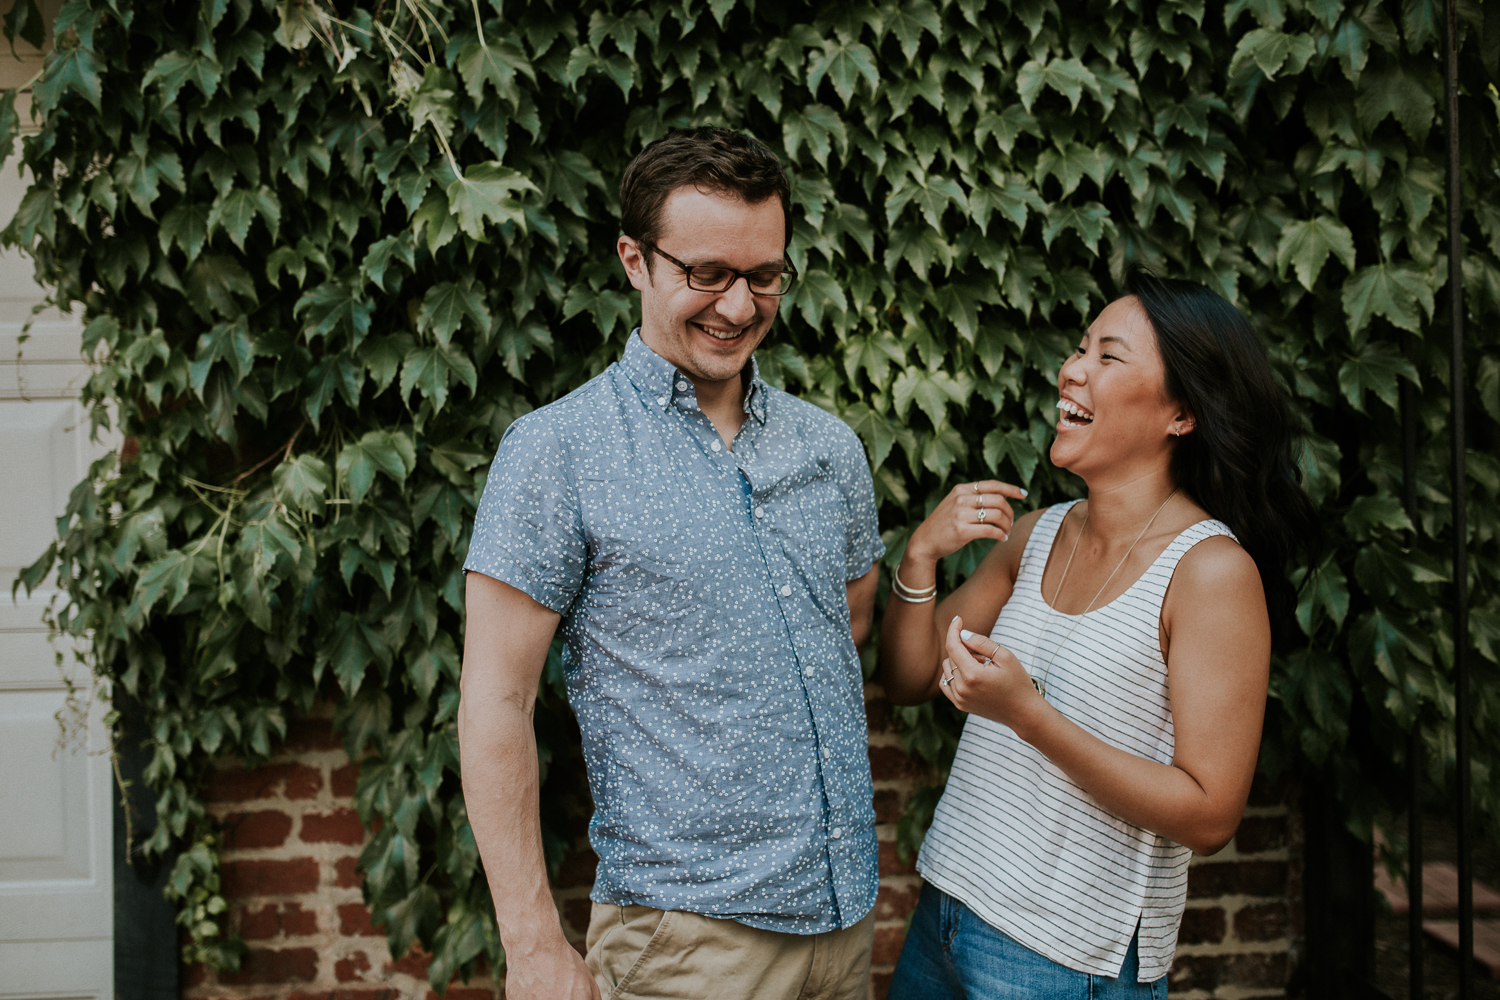 washington_dc_blagden_alley_engagement_photographer-7.jpg